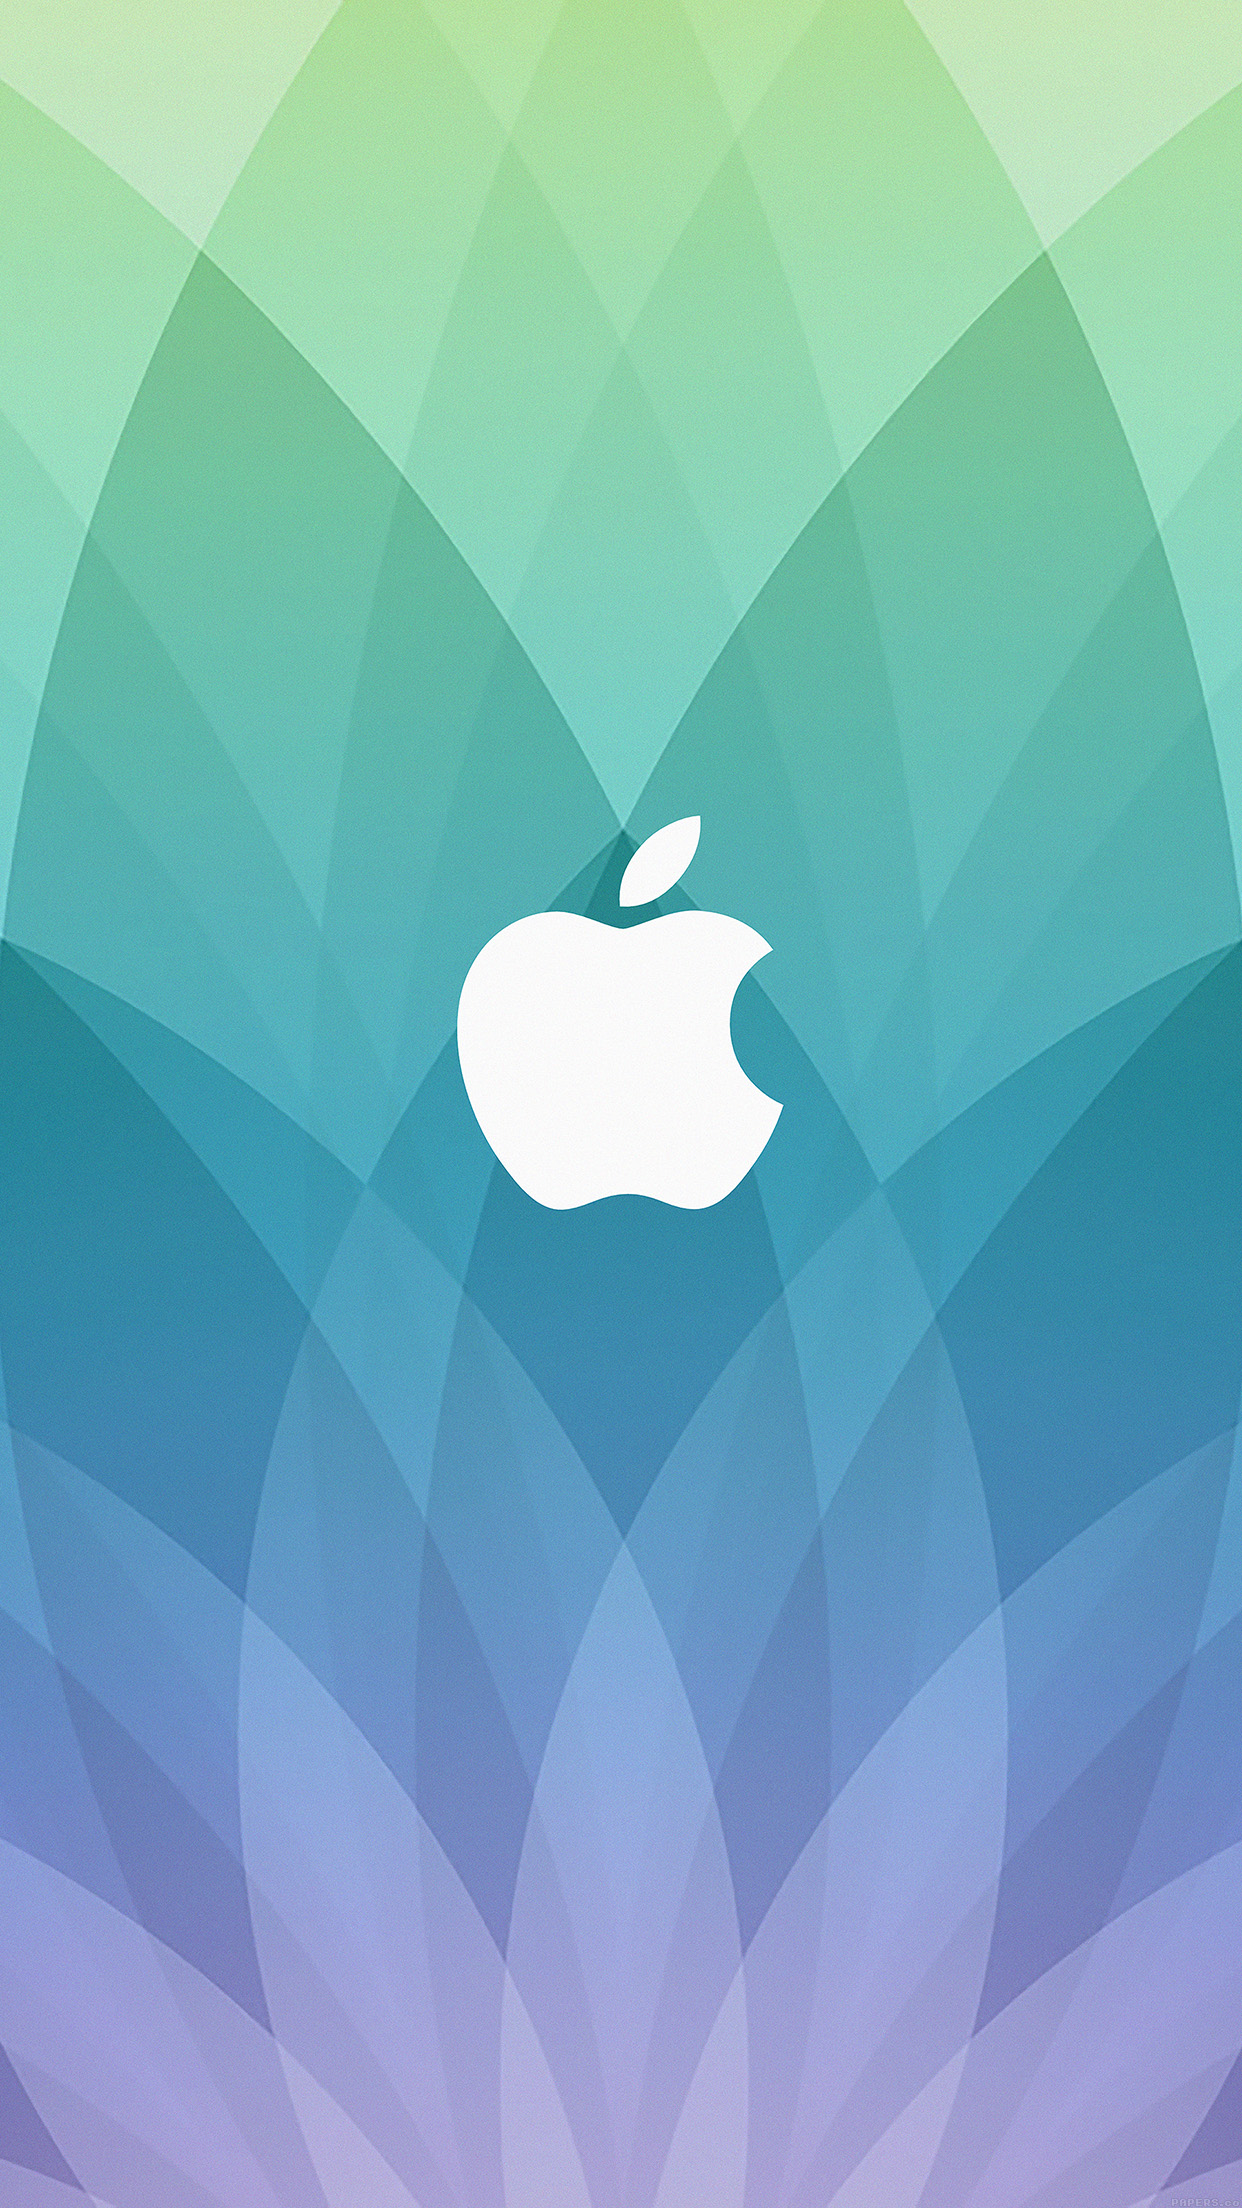 Apple Event March 2015 Pattern Art Android wallpaper